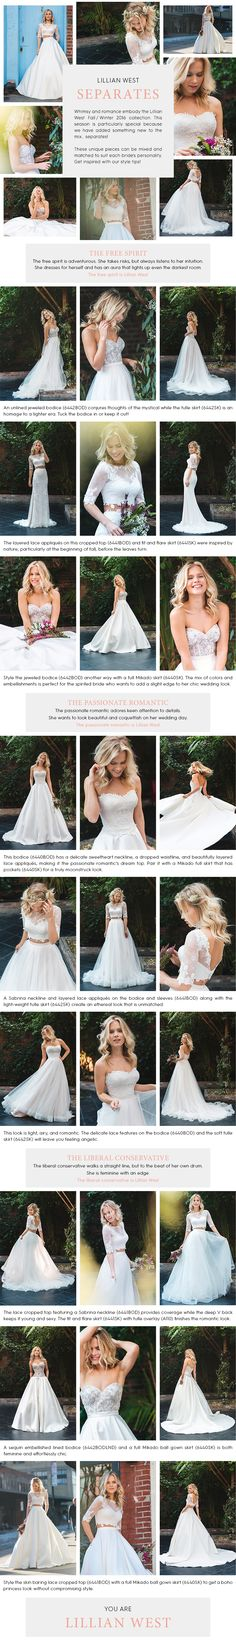 Lillian West Separates Collection Available at Ella Park Bridal | Newburgh, IN | 812.853.1800 |  Mix and Match